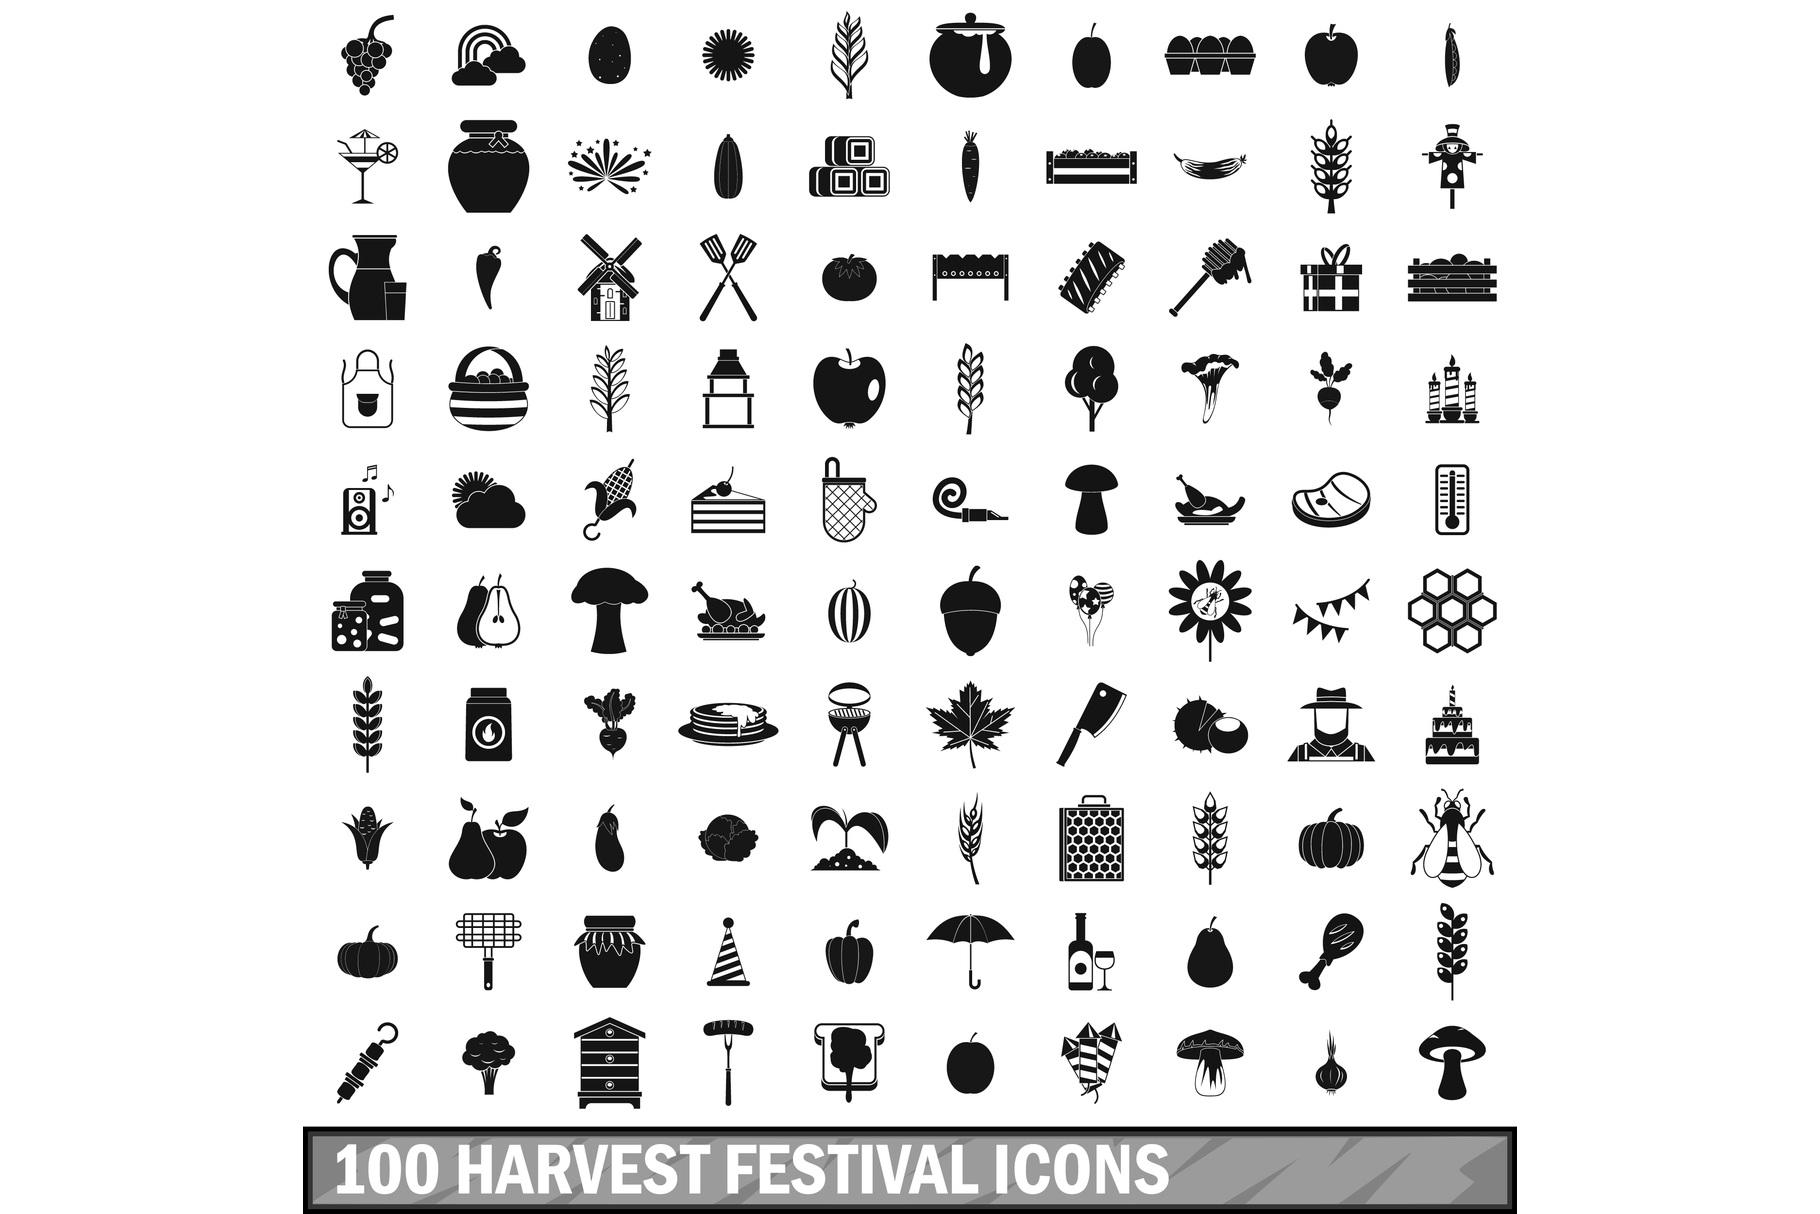 100 harvest festival icons set, simple style example image 1